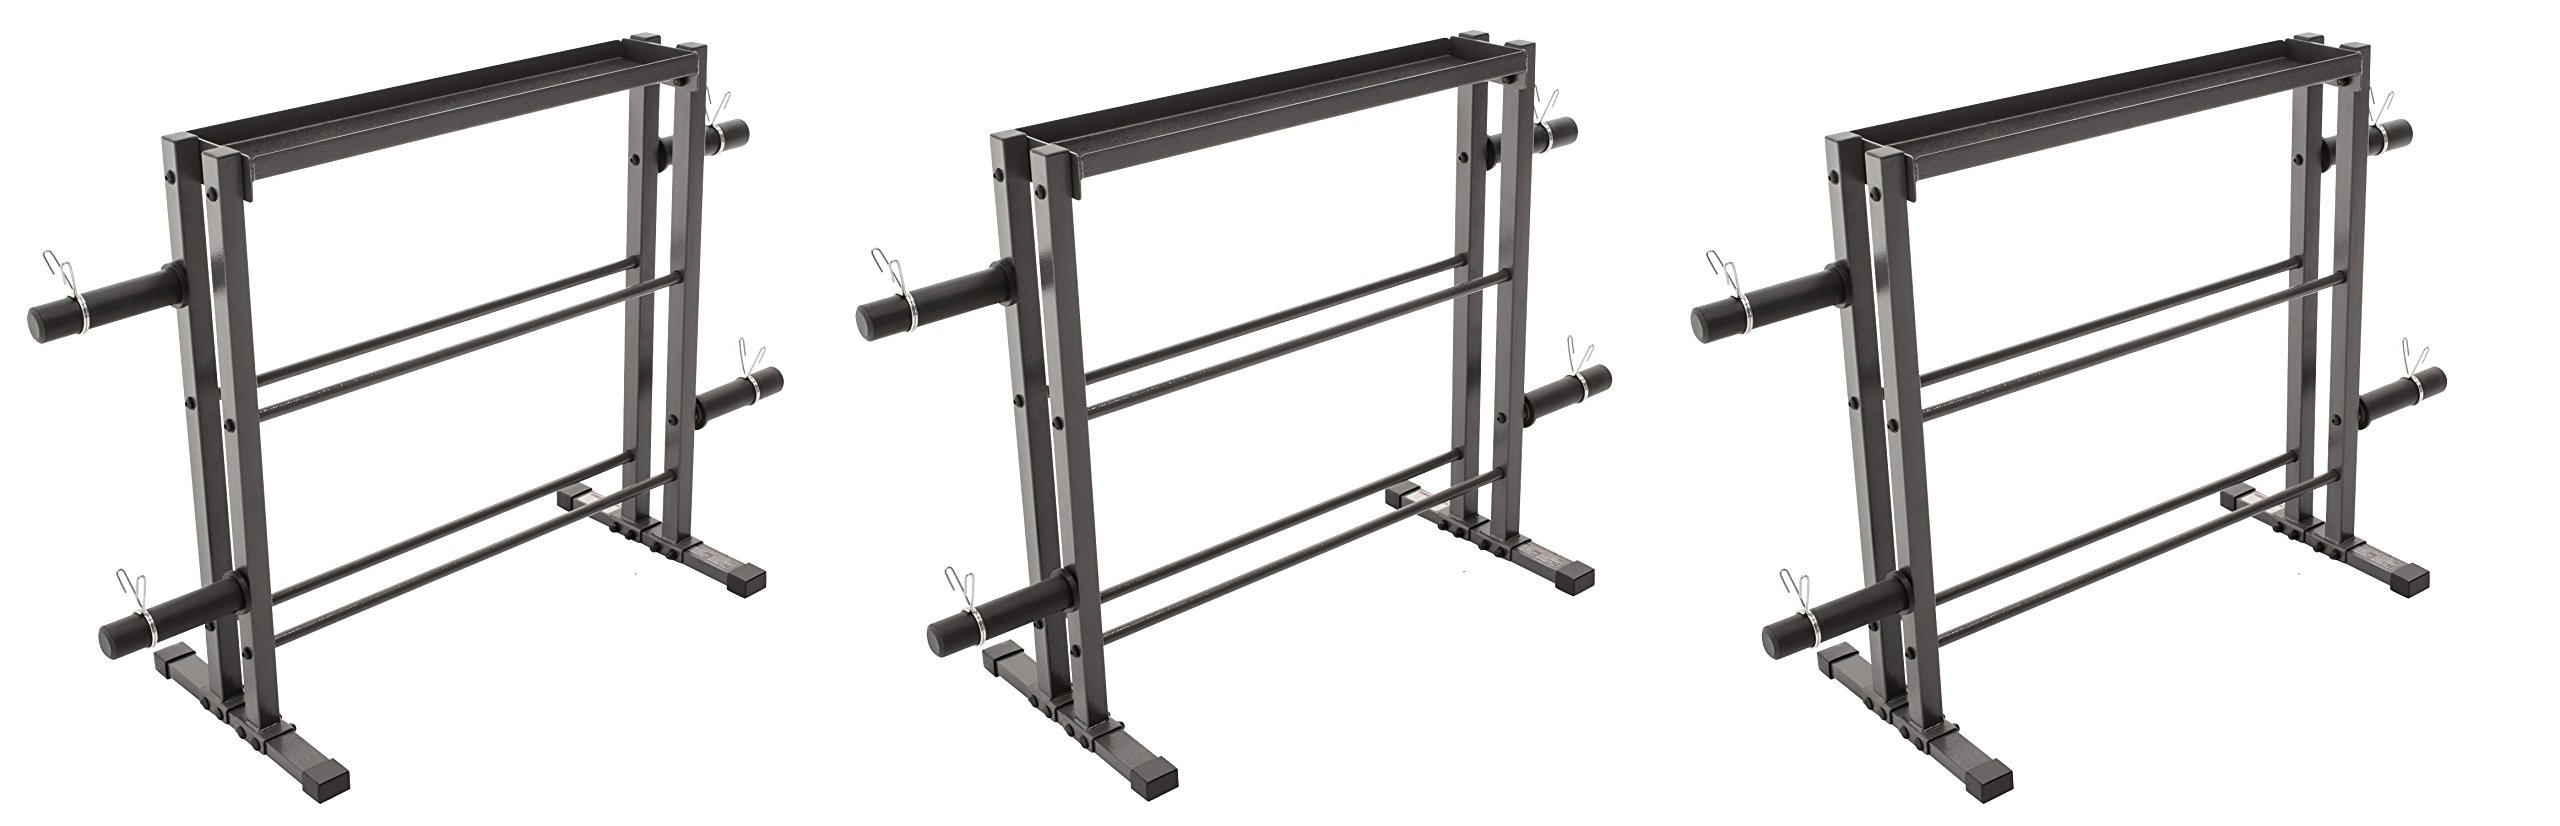 Marcy Combo Weights Storage Rack for Dumbbells, Kettlebells, and Weight Plates DBR-0117 (Pack of 3)